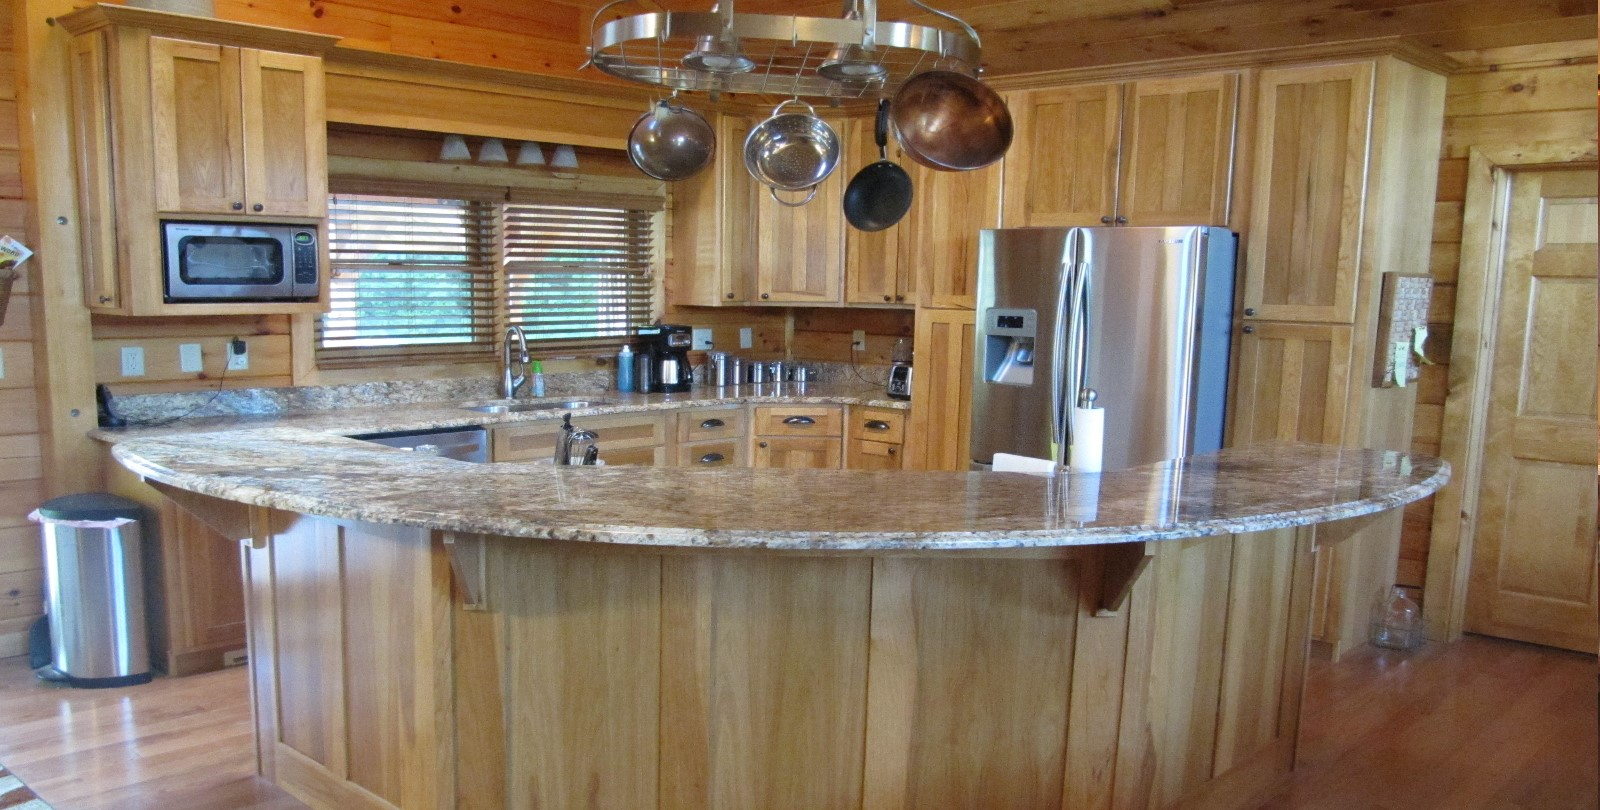 wolter's custom cabinets, llc